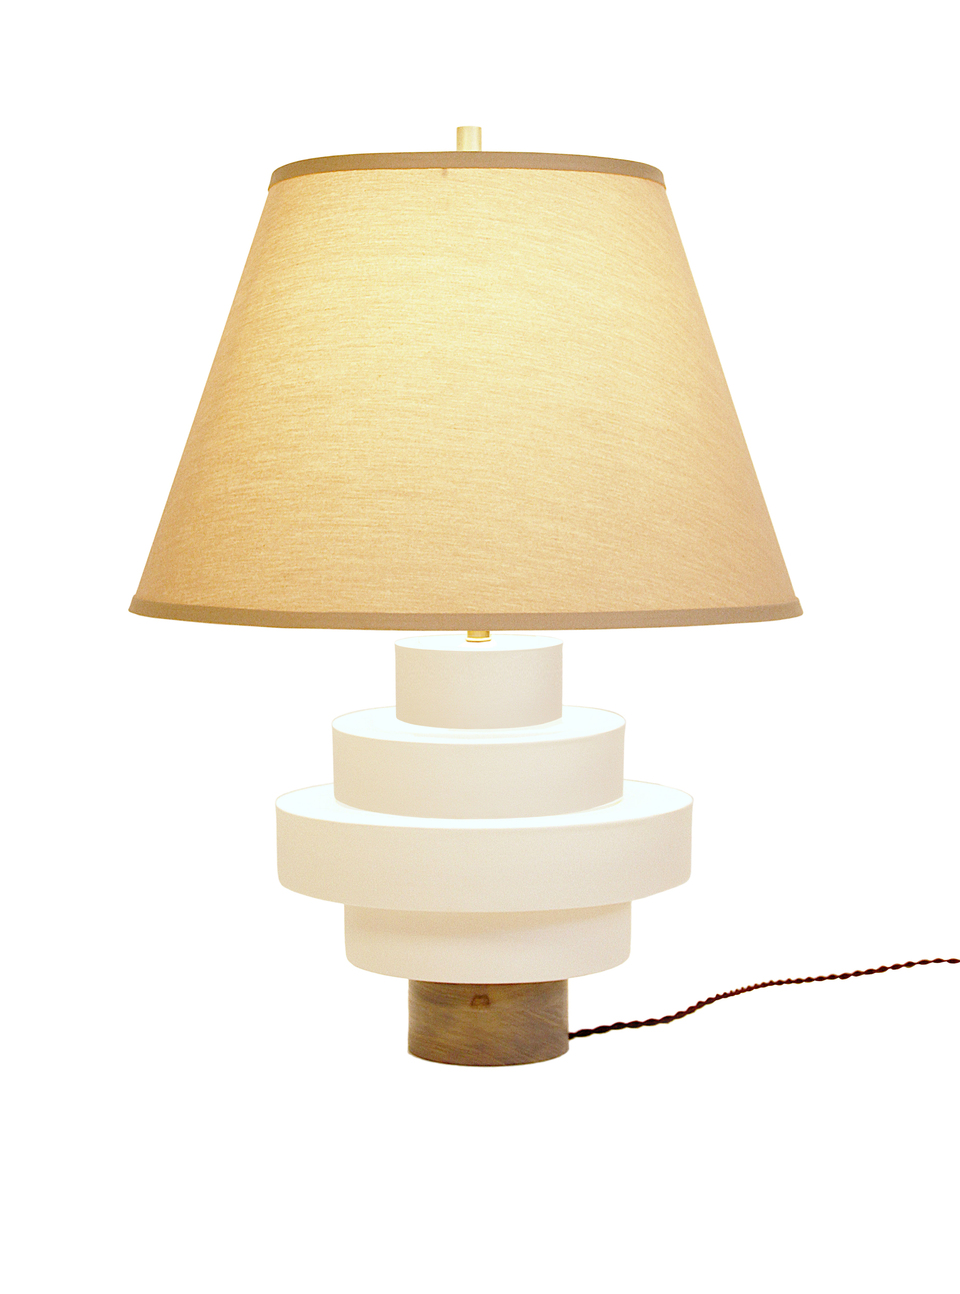 dana-john-laguna-white-porcelain-disk-lamp-lighting-table-modern.jpg